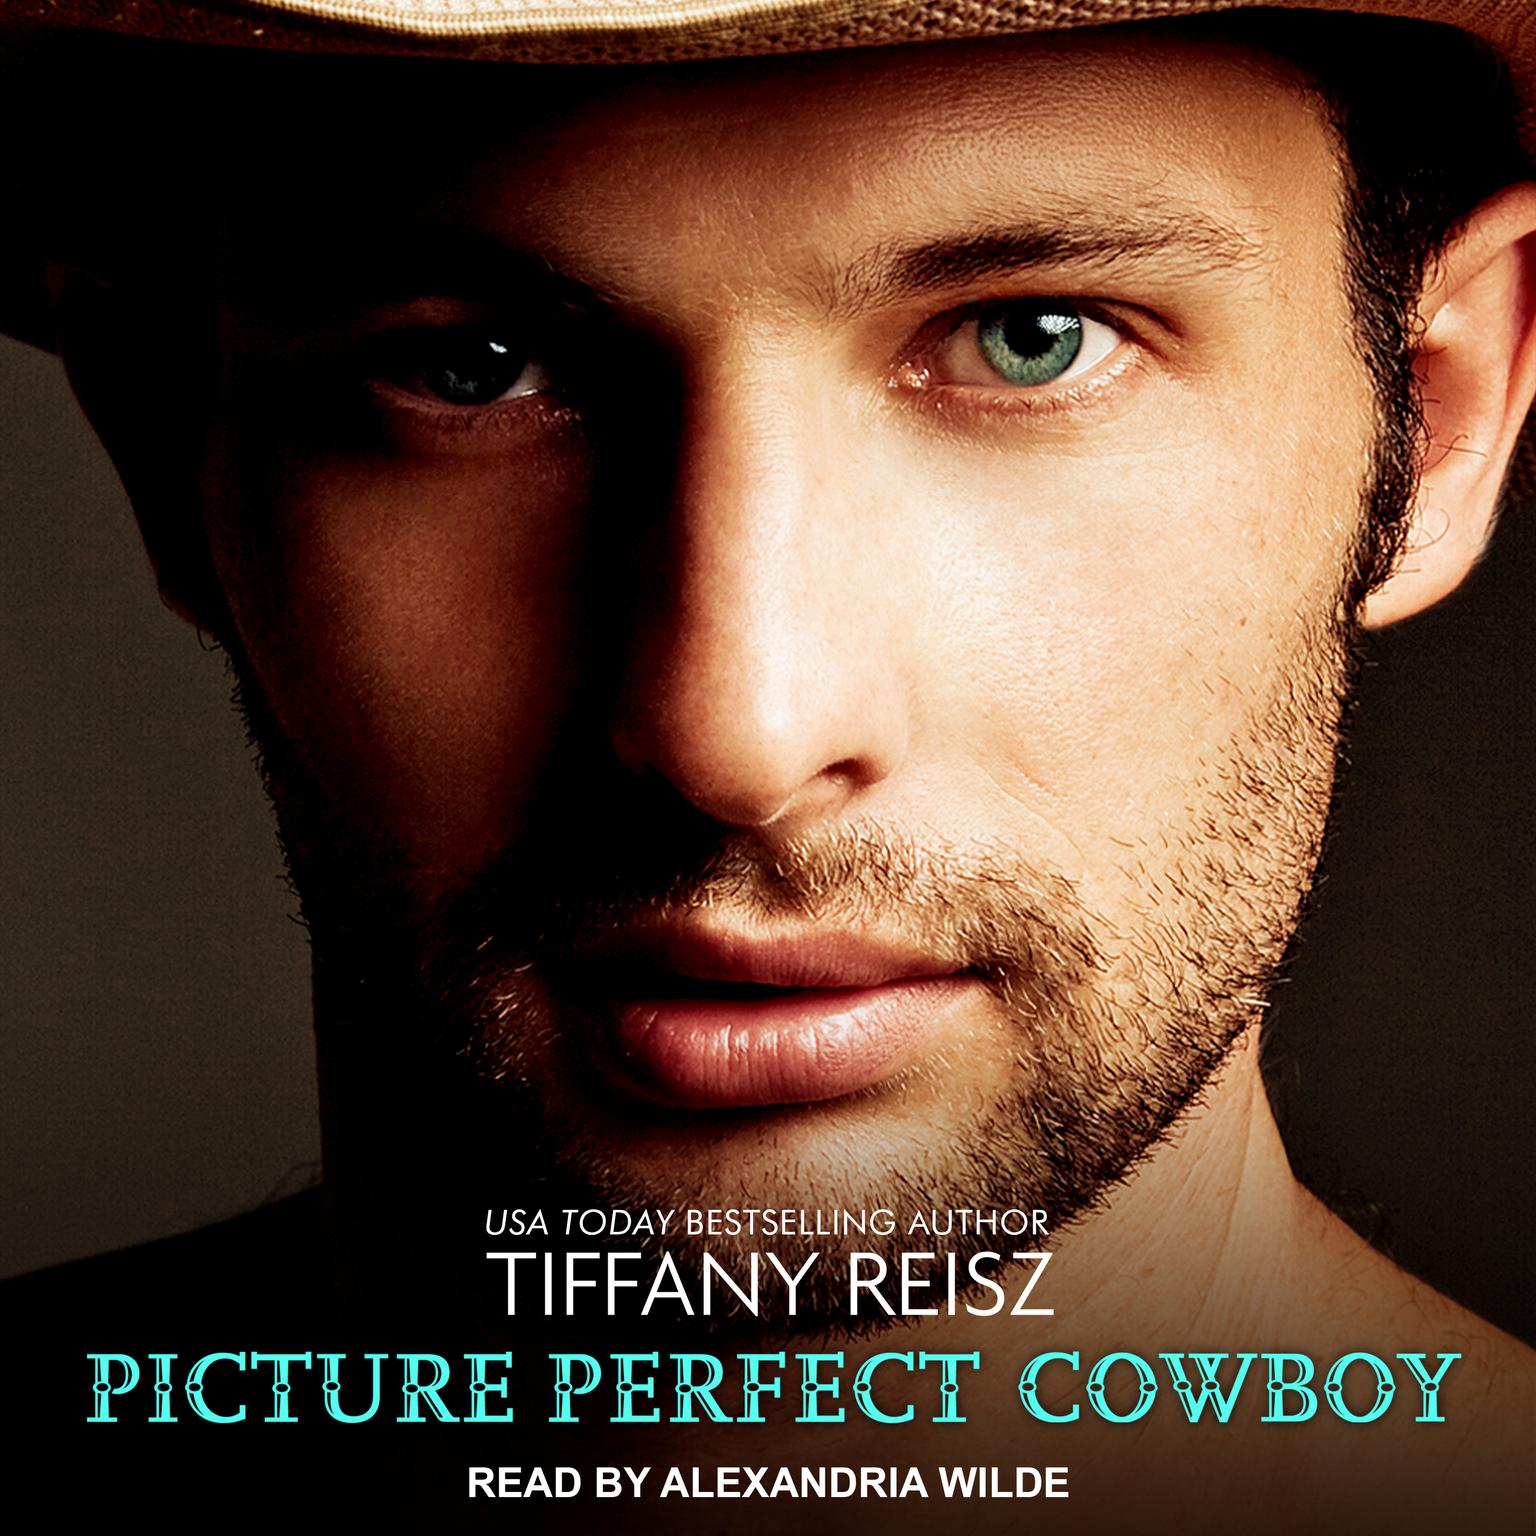 Printable Picture Perfect Cowboy Audiobook Cover Art